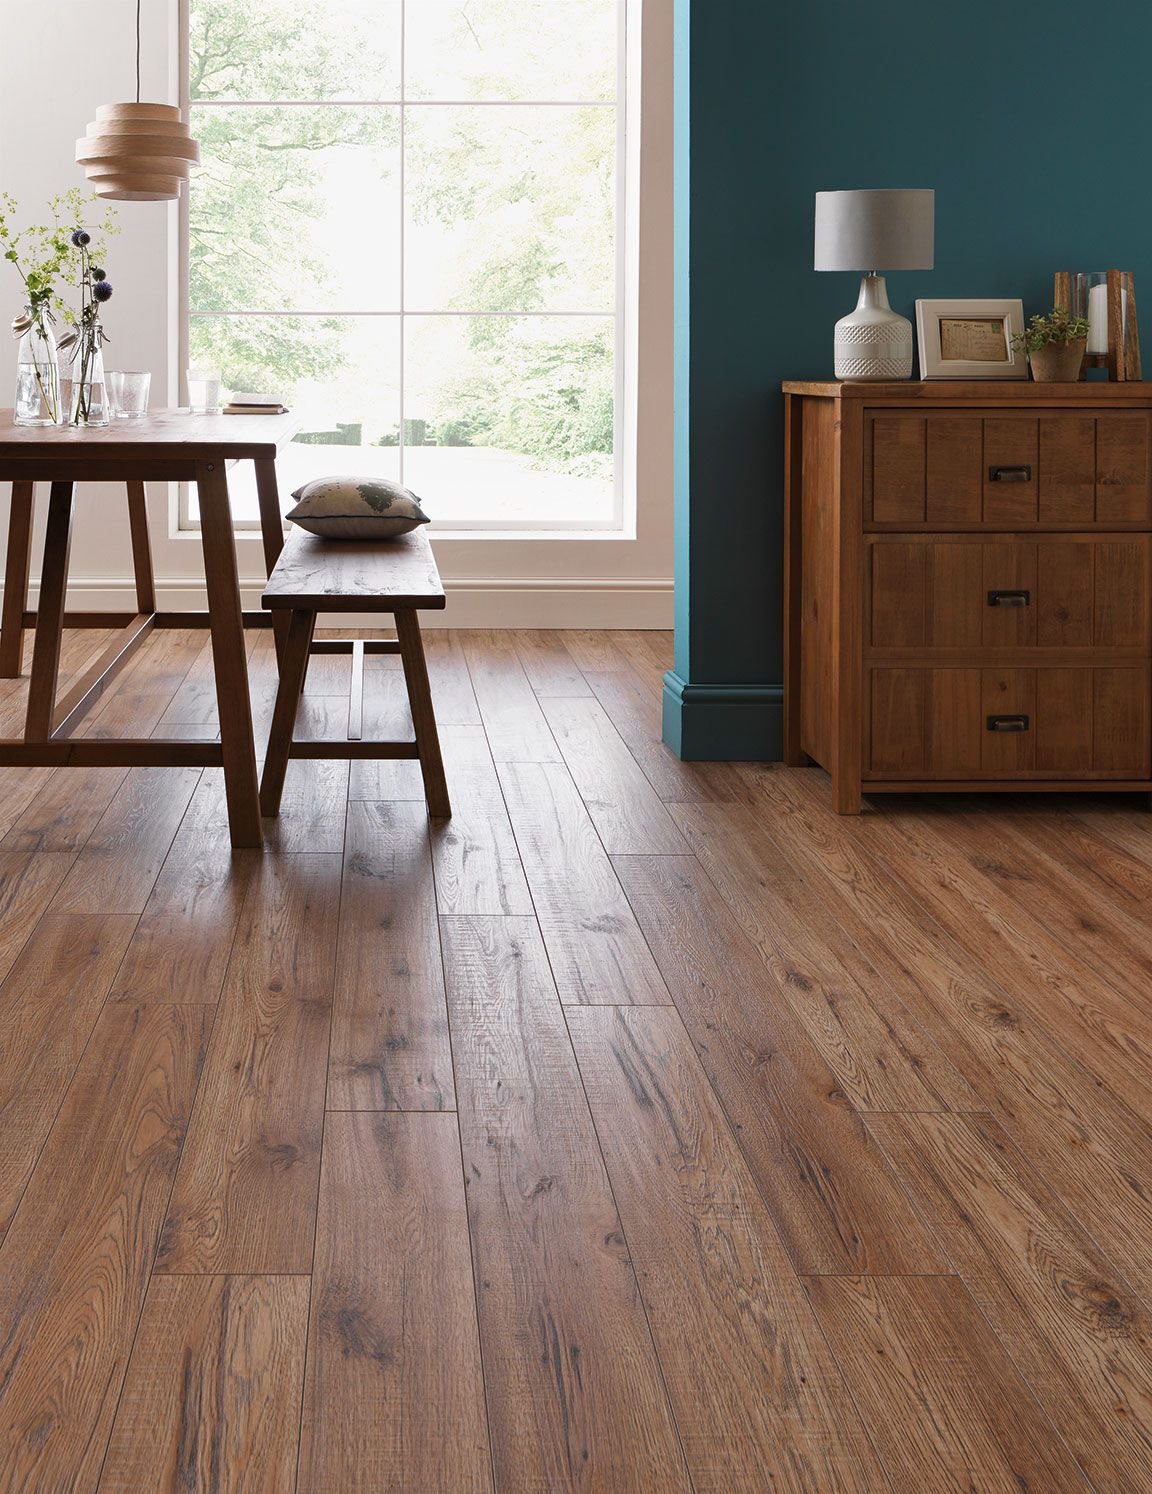 Schreiber Chicheley Oak Laminate Flooring 1.76 sq m per